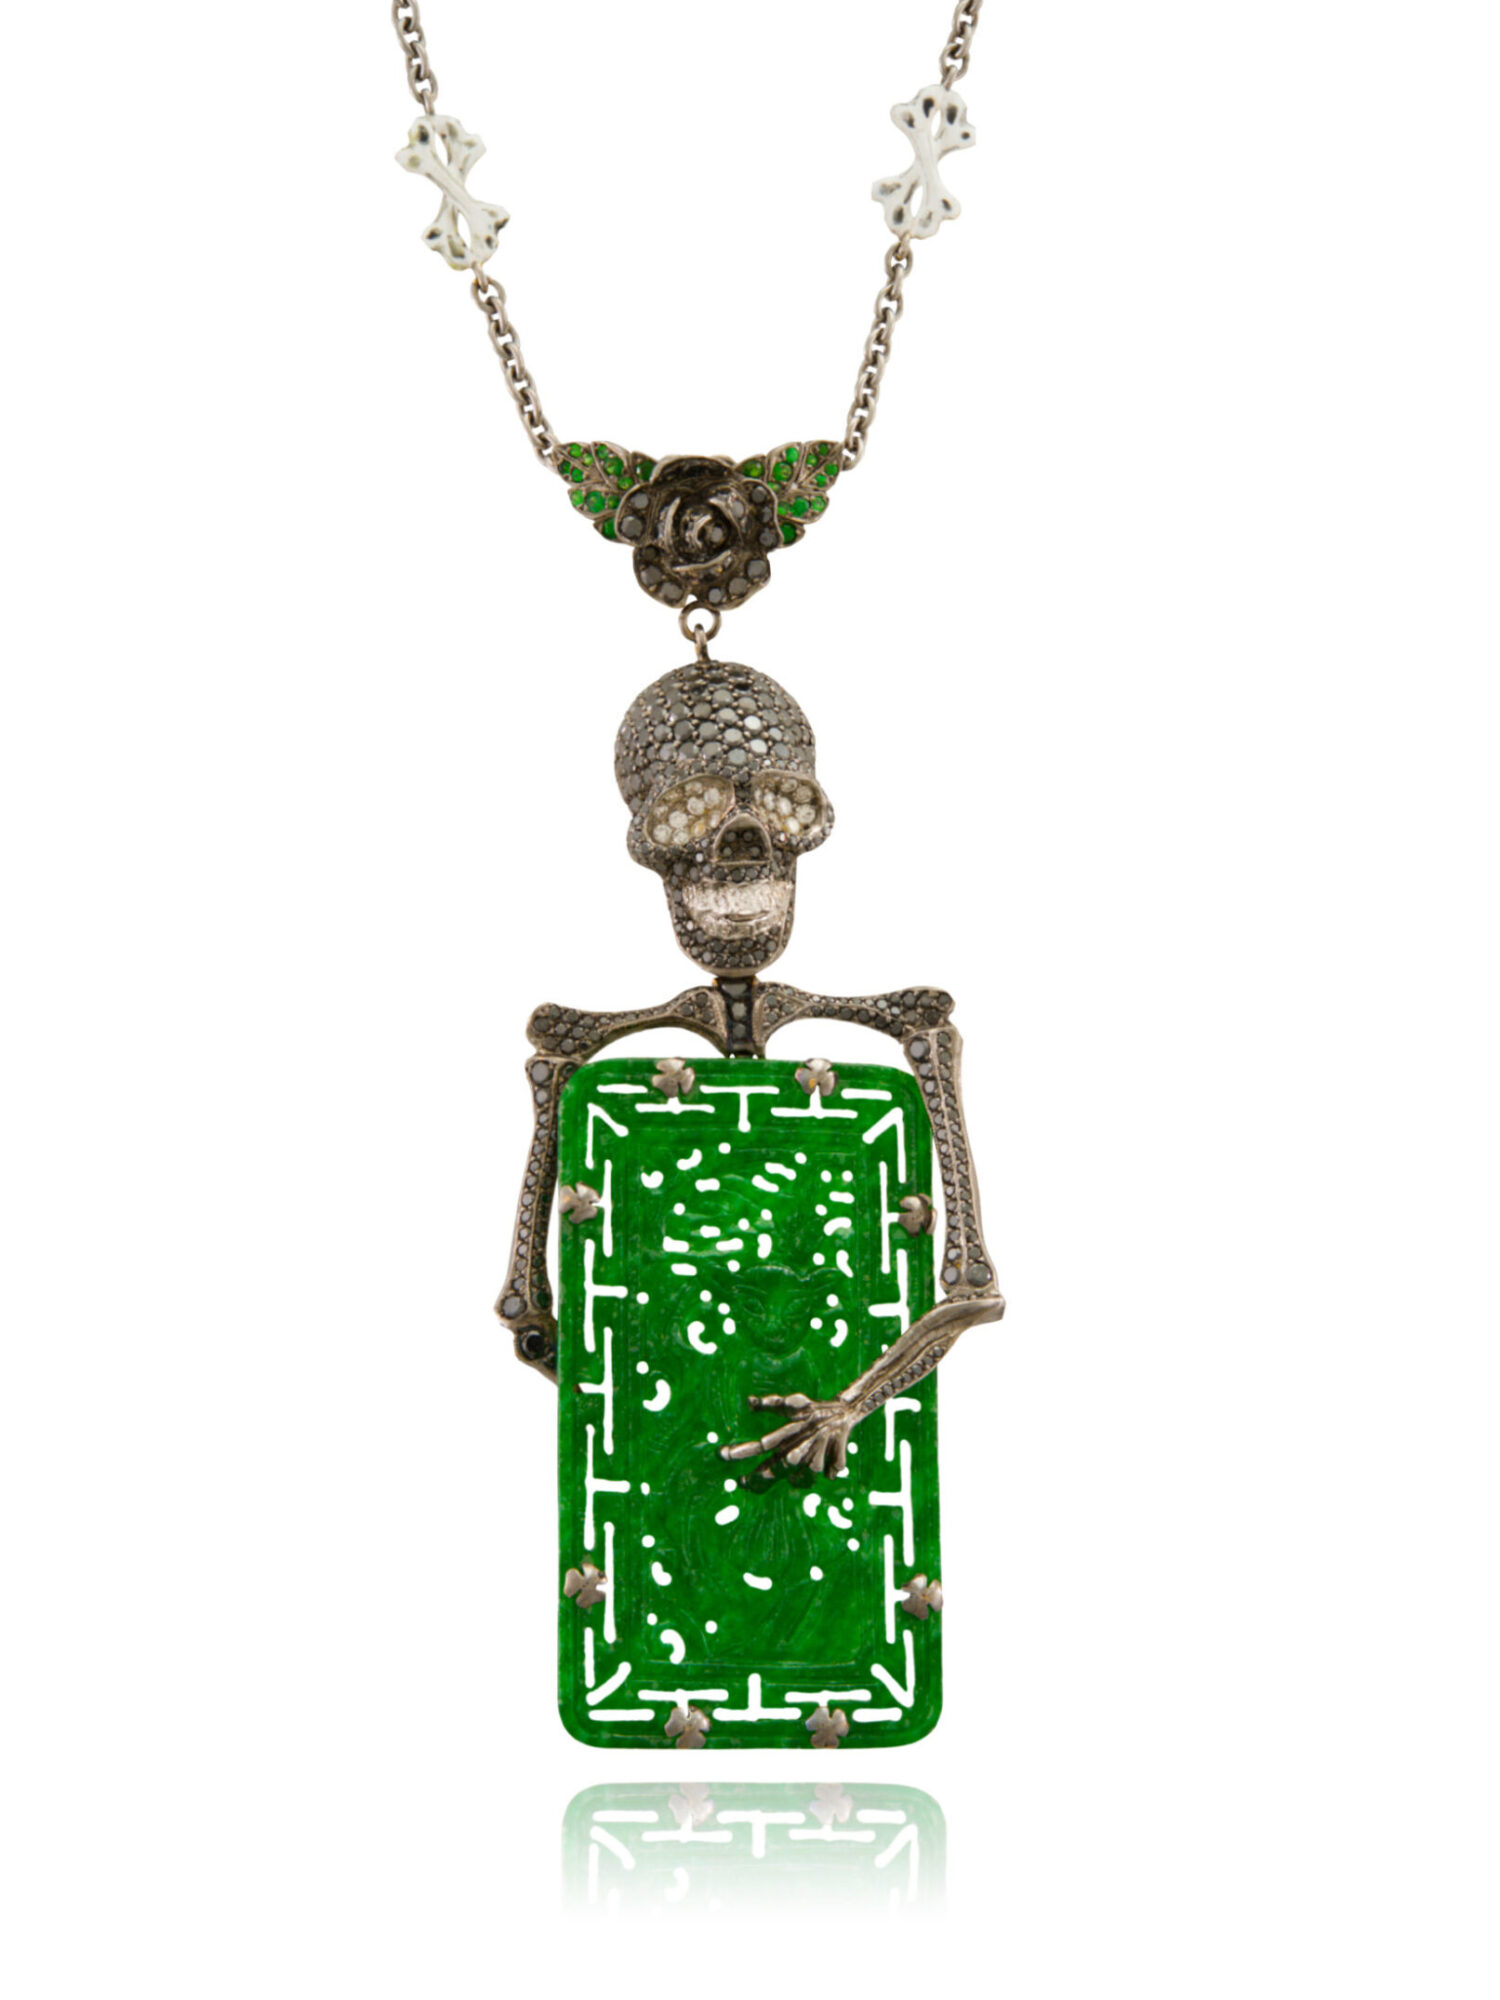 Necklace 18 K OR / gold platted with black rhodium 55.7 grs, 451 DTS / black diamonds 6.82 cts, grenats / garnets 0.14 gr, 1 jade 6.2 grs + chain